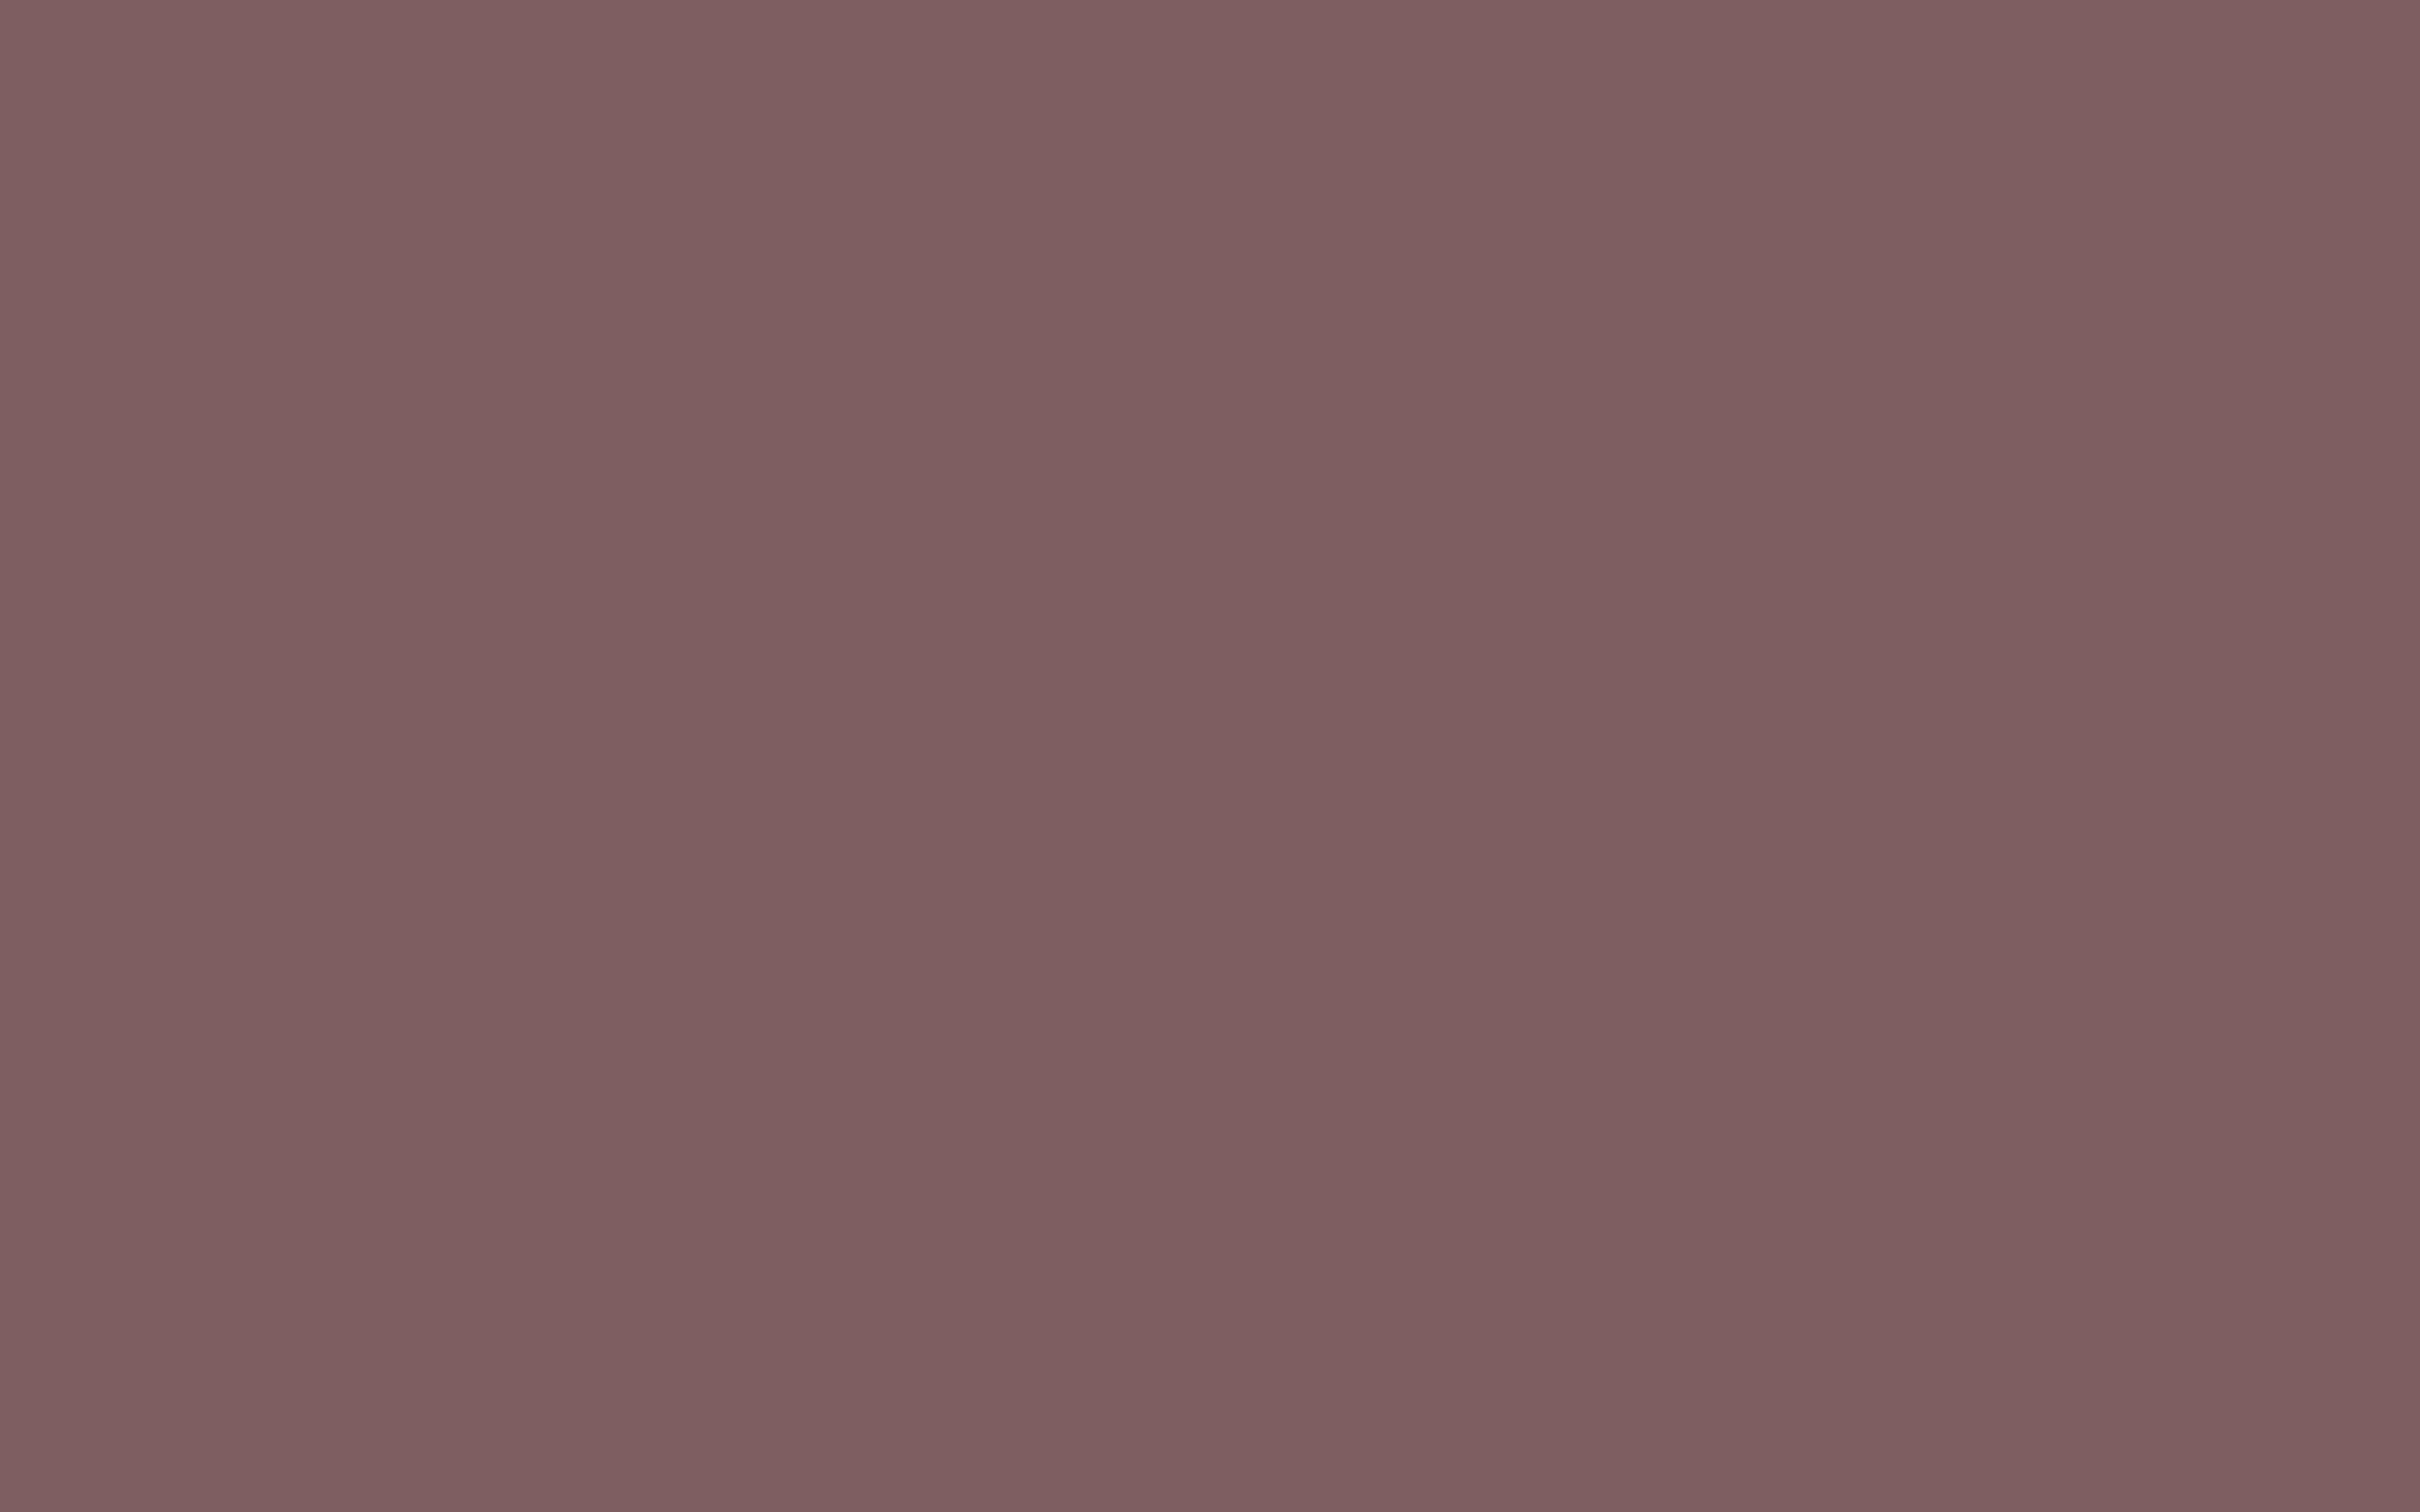 2880x1800 Deep Taupe Solid Color Background